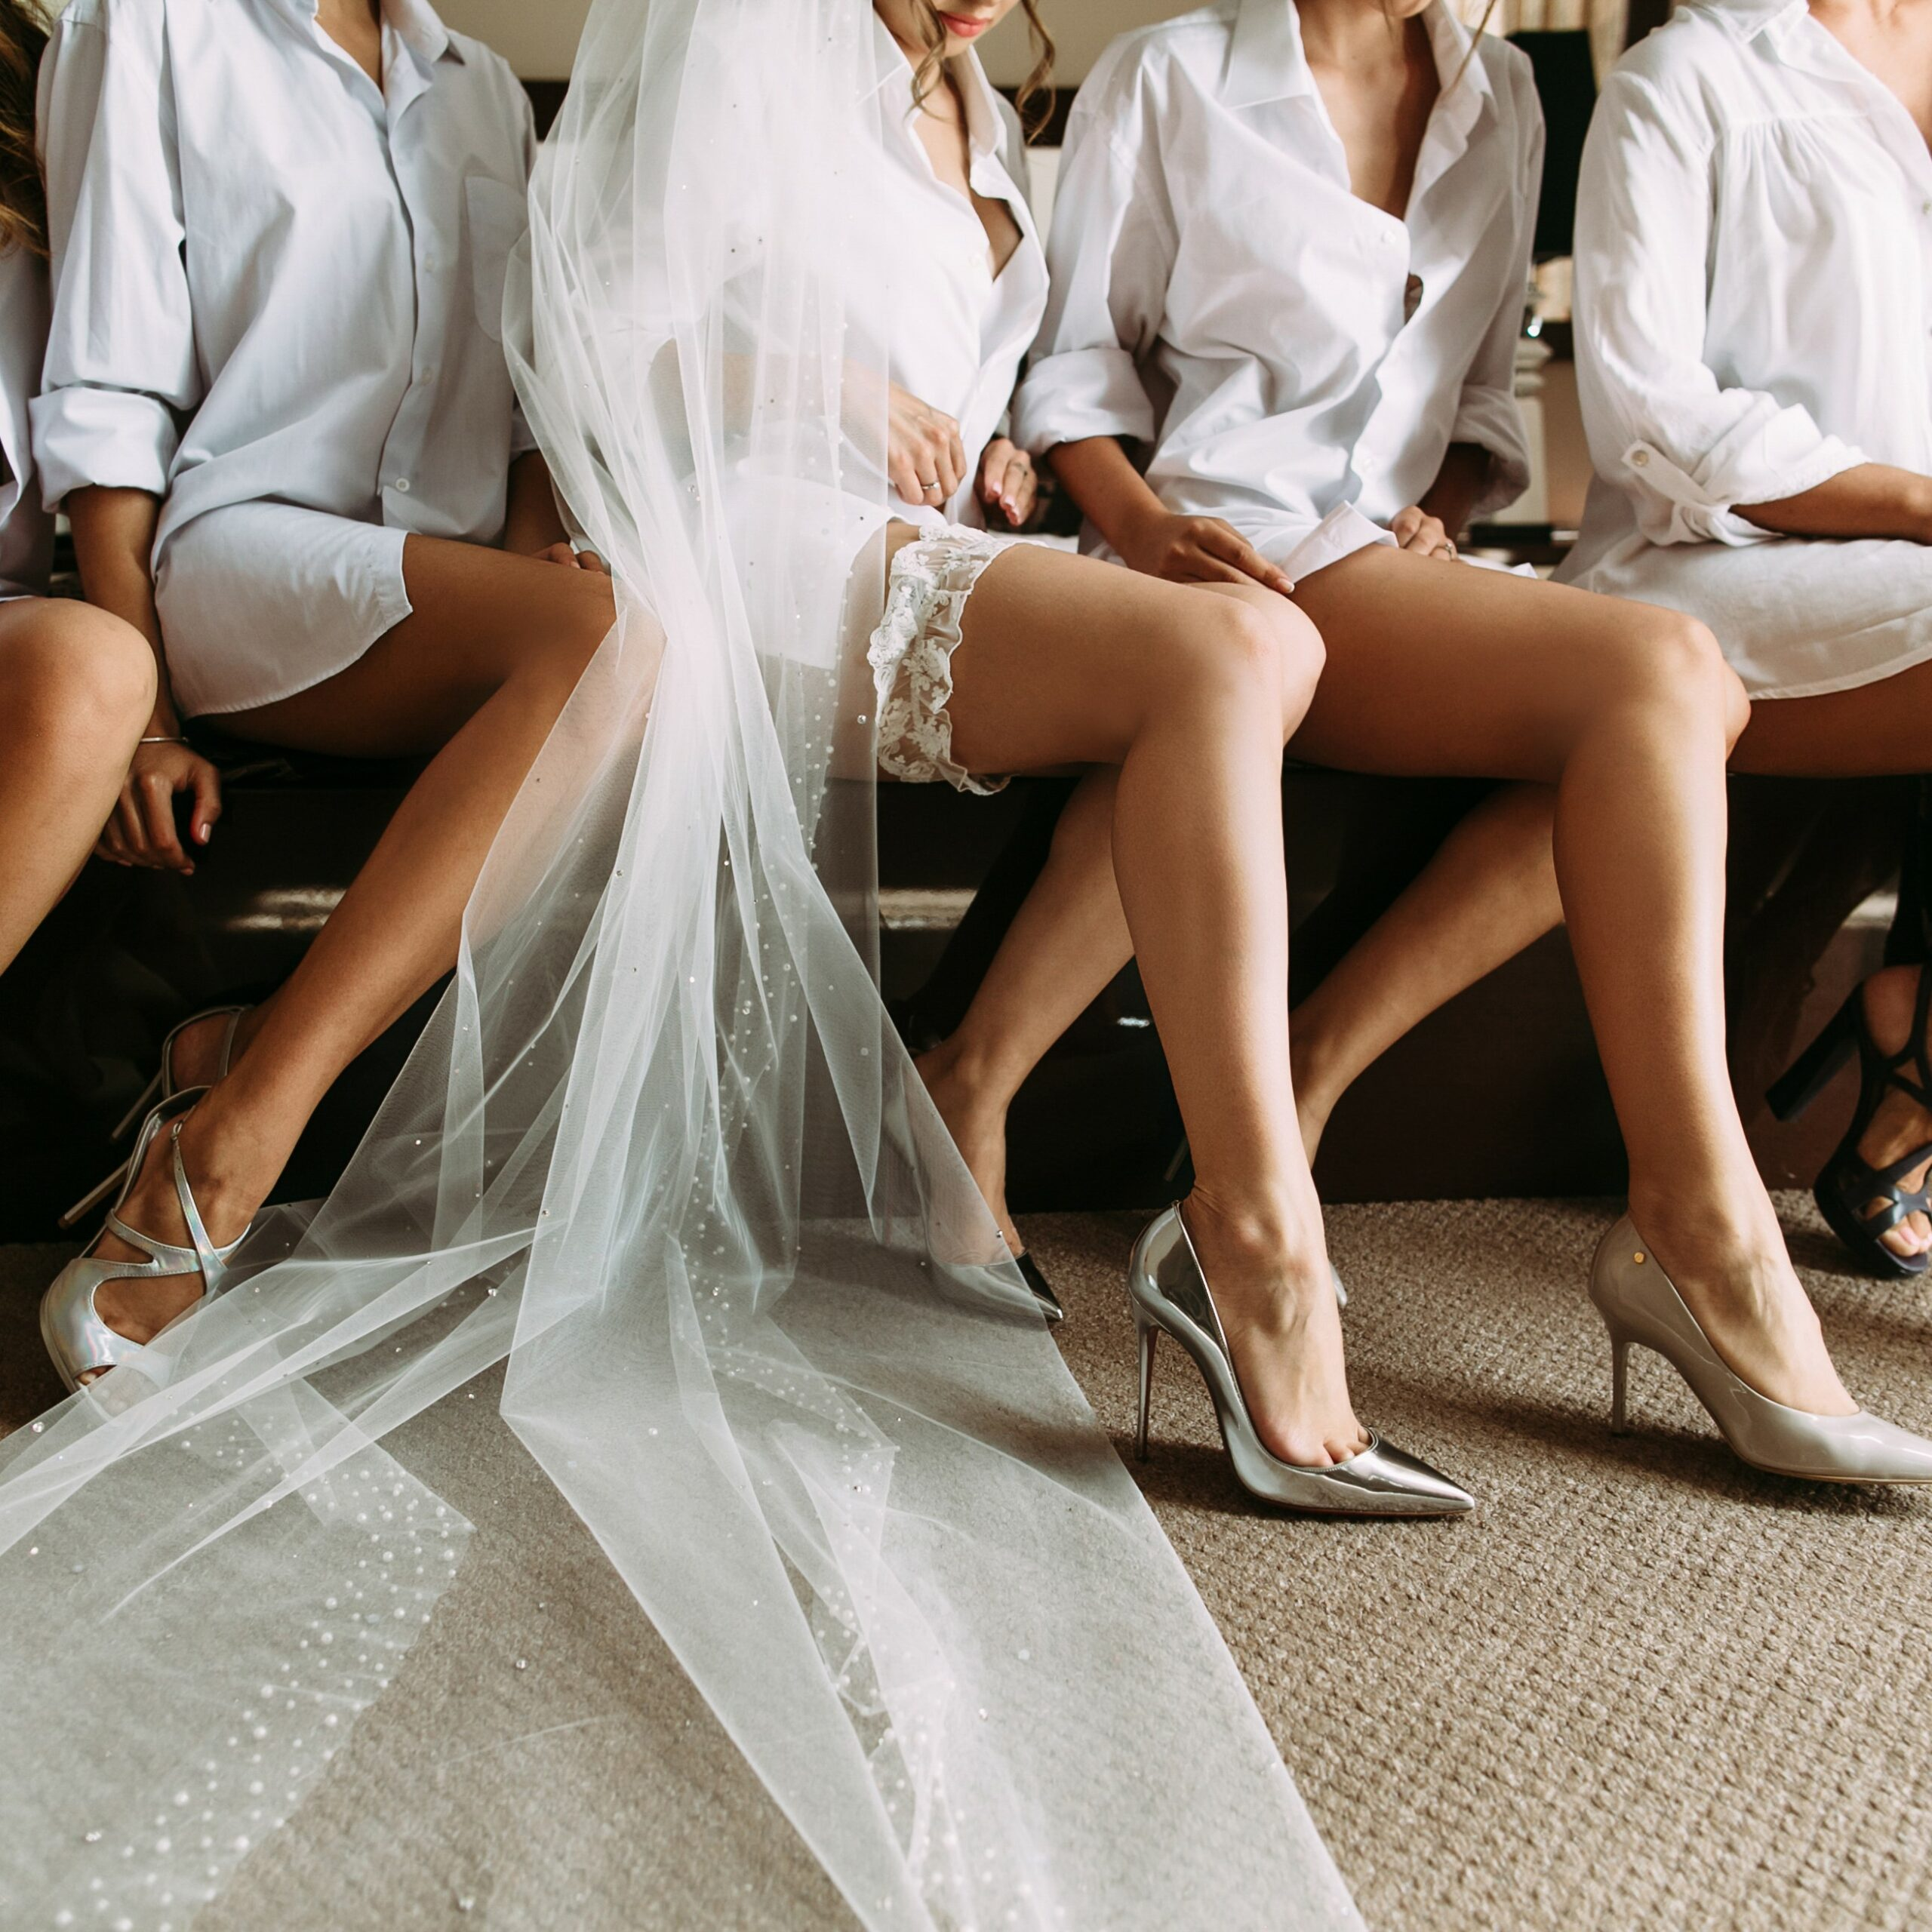 Lovely,Legs,Of,The,Bride,And,Her,Friends